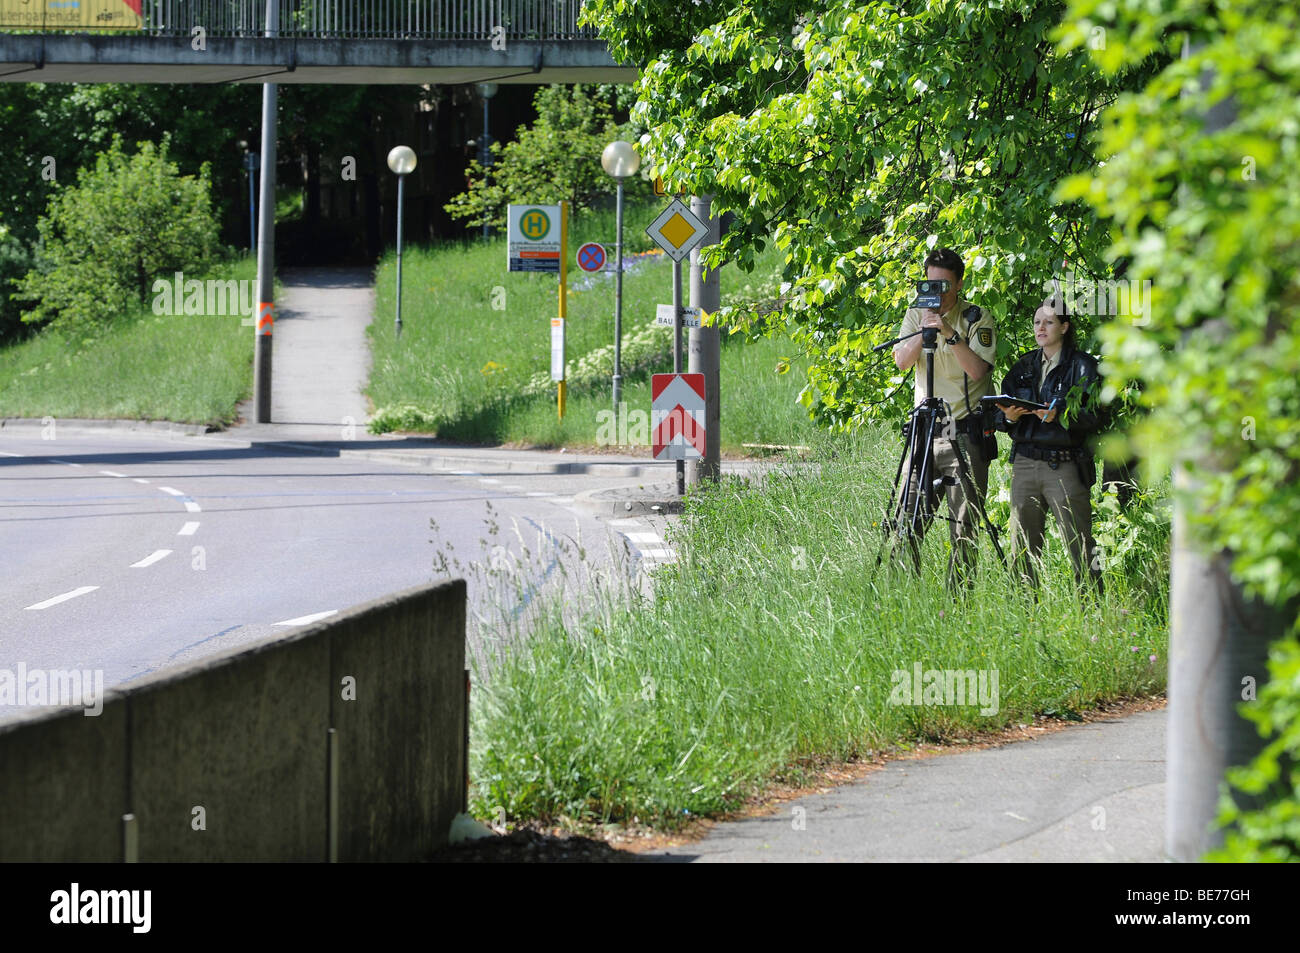 Police officers measuring speed with a laser gun, RIEGEL FG21-P, Stuttgart, Baden-Wuerttemberg, Germany, Europe Stock Photo